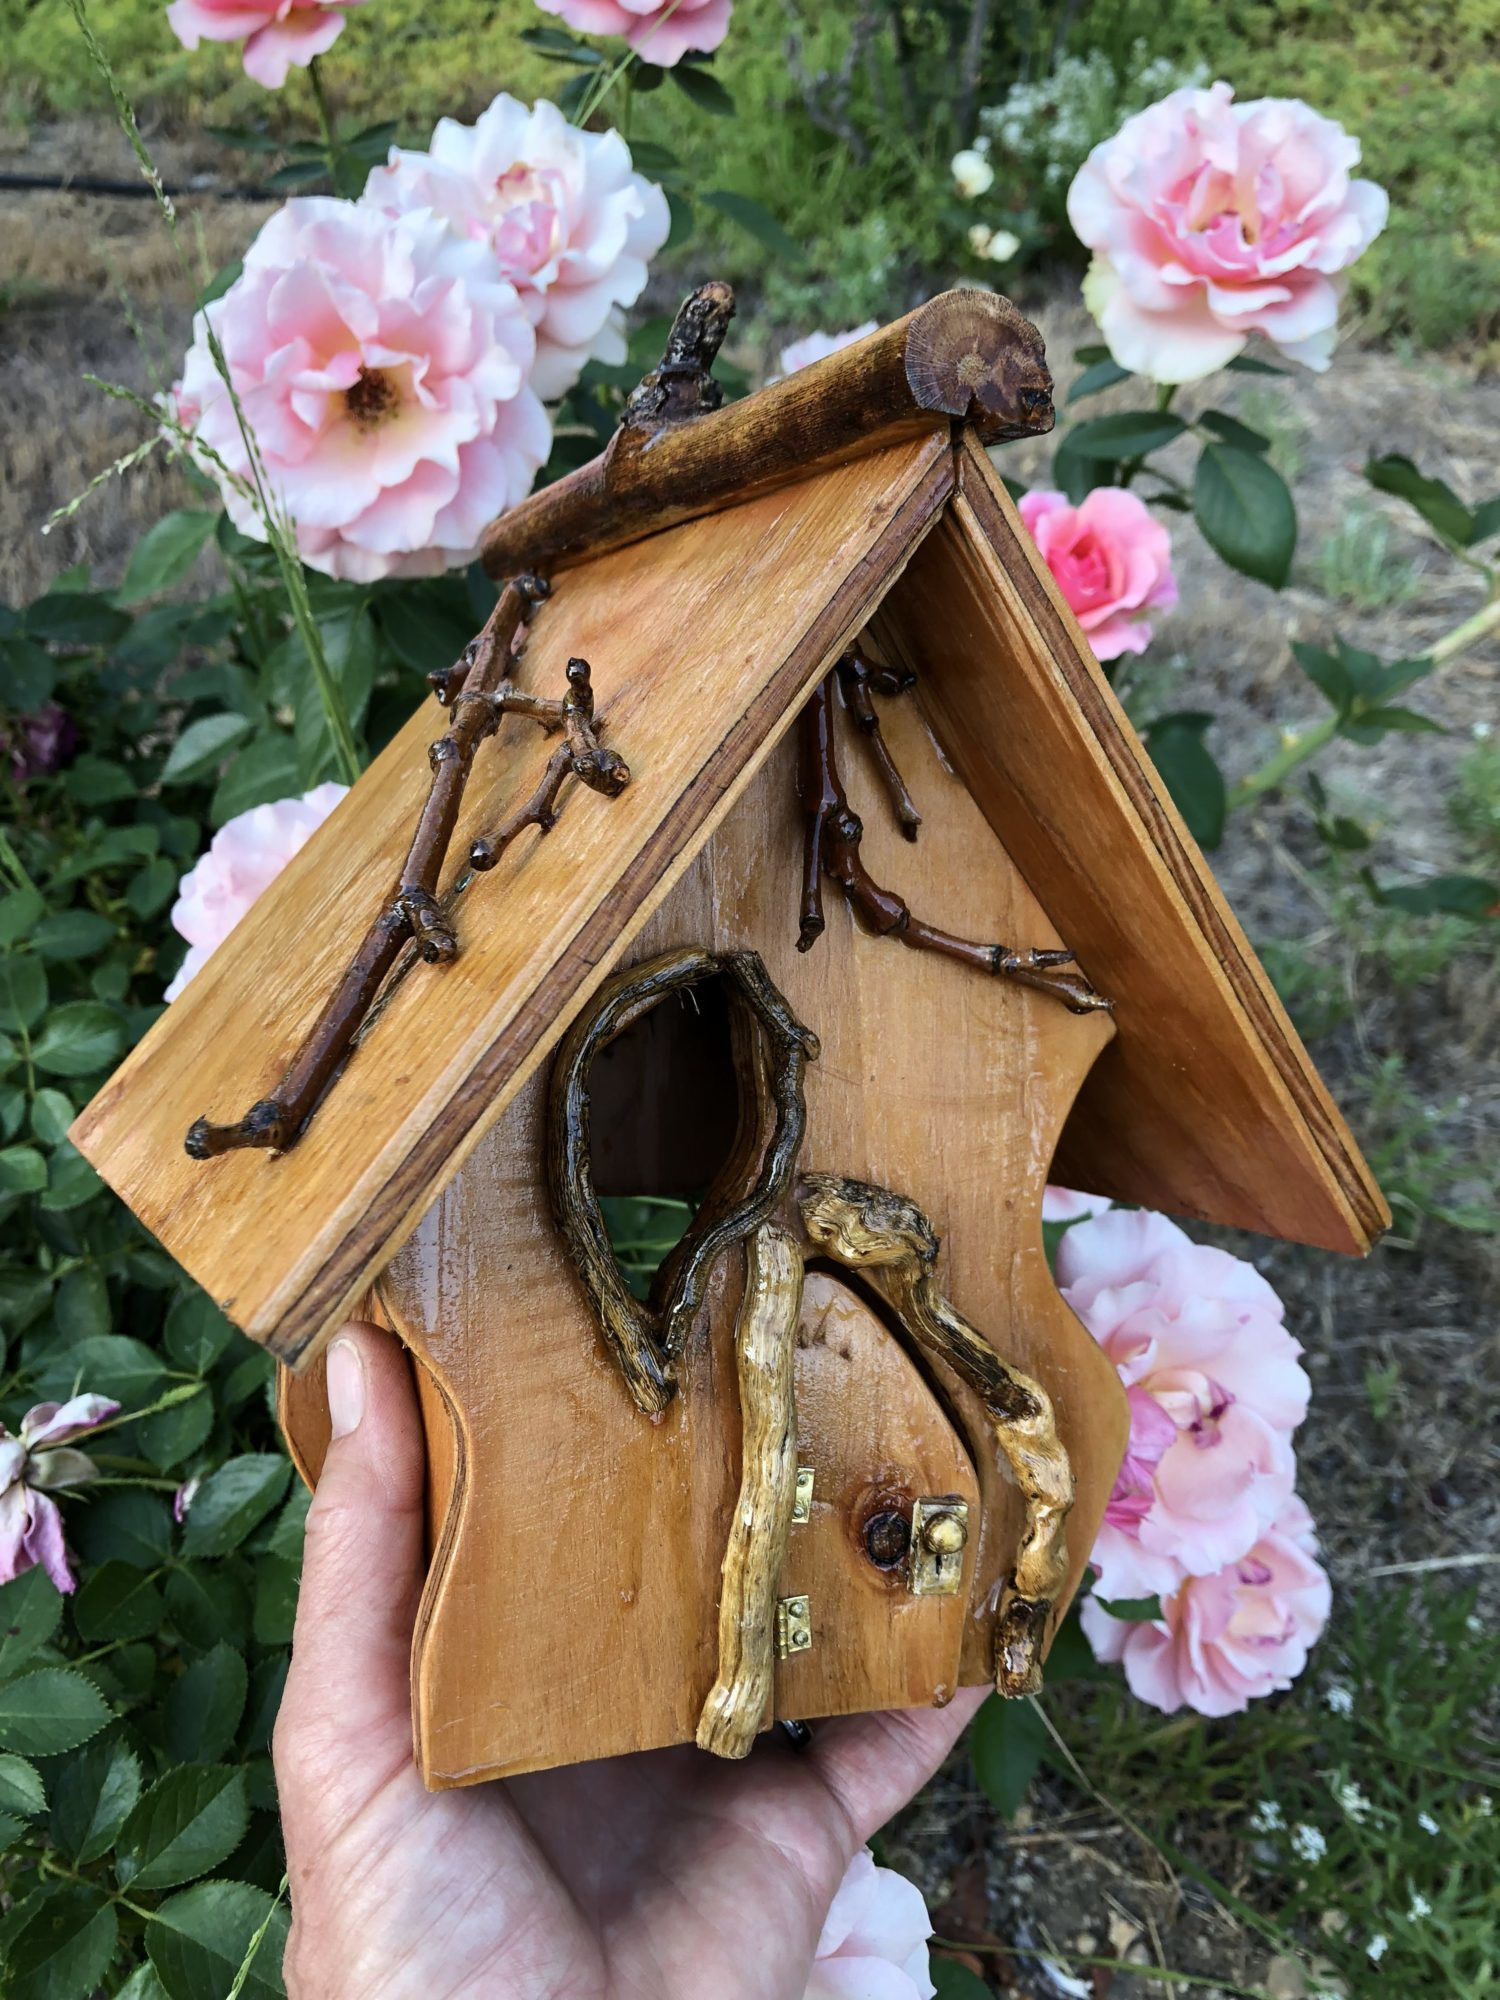 Fairy Gardens are Sprouted Outdoors